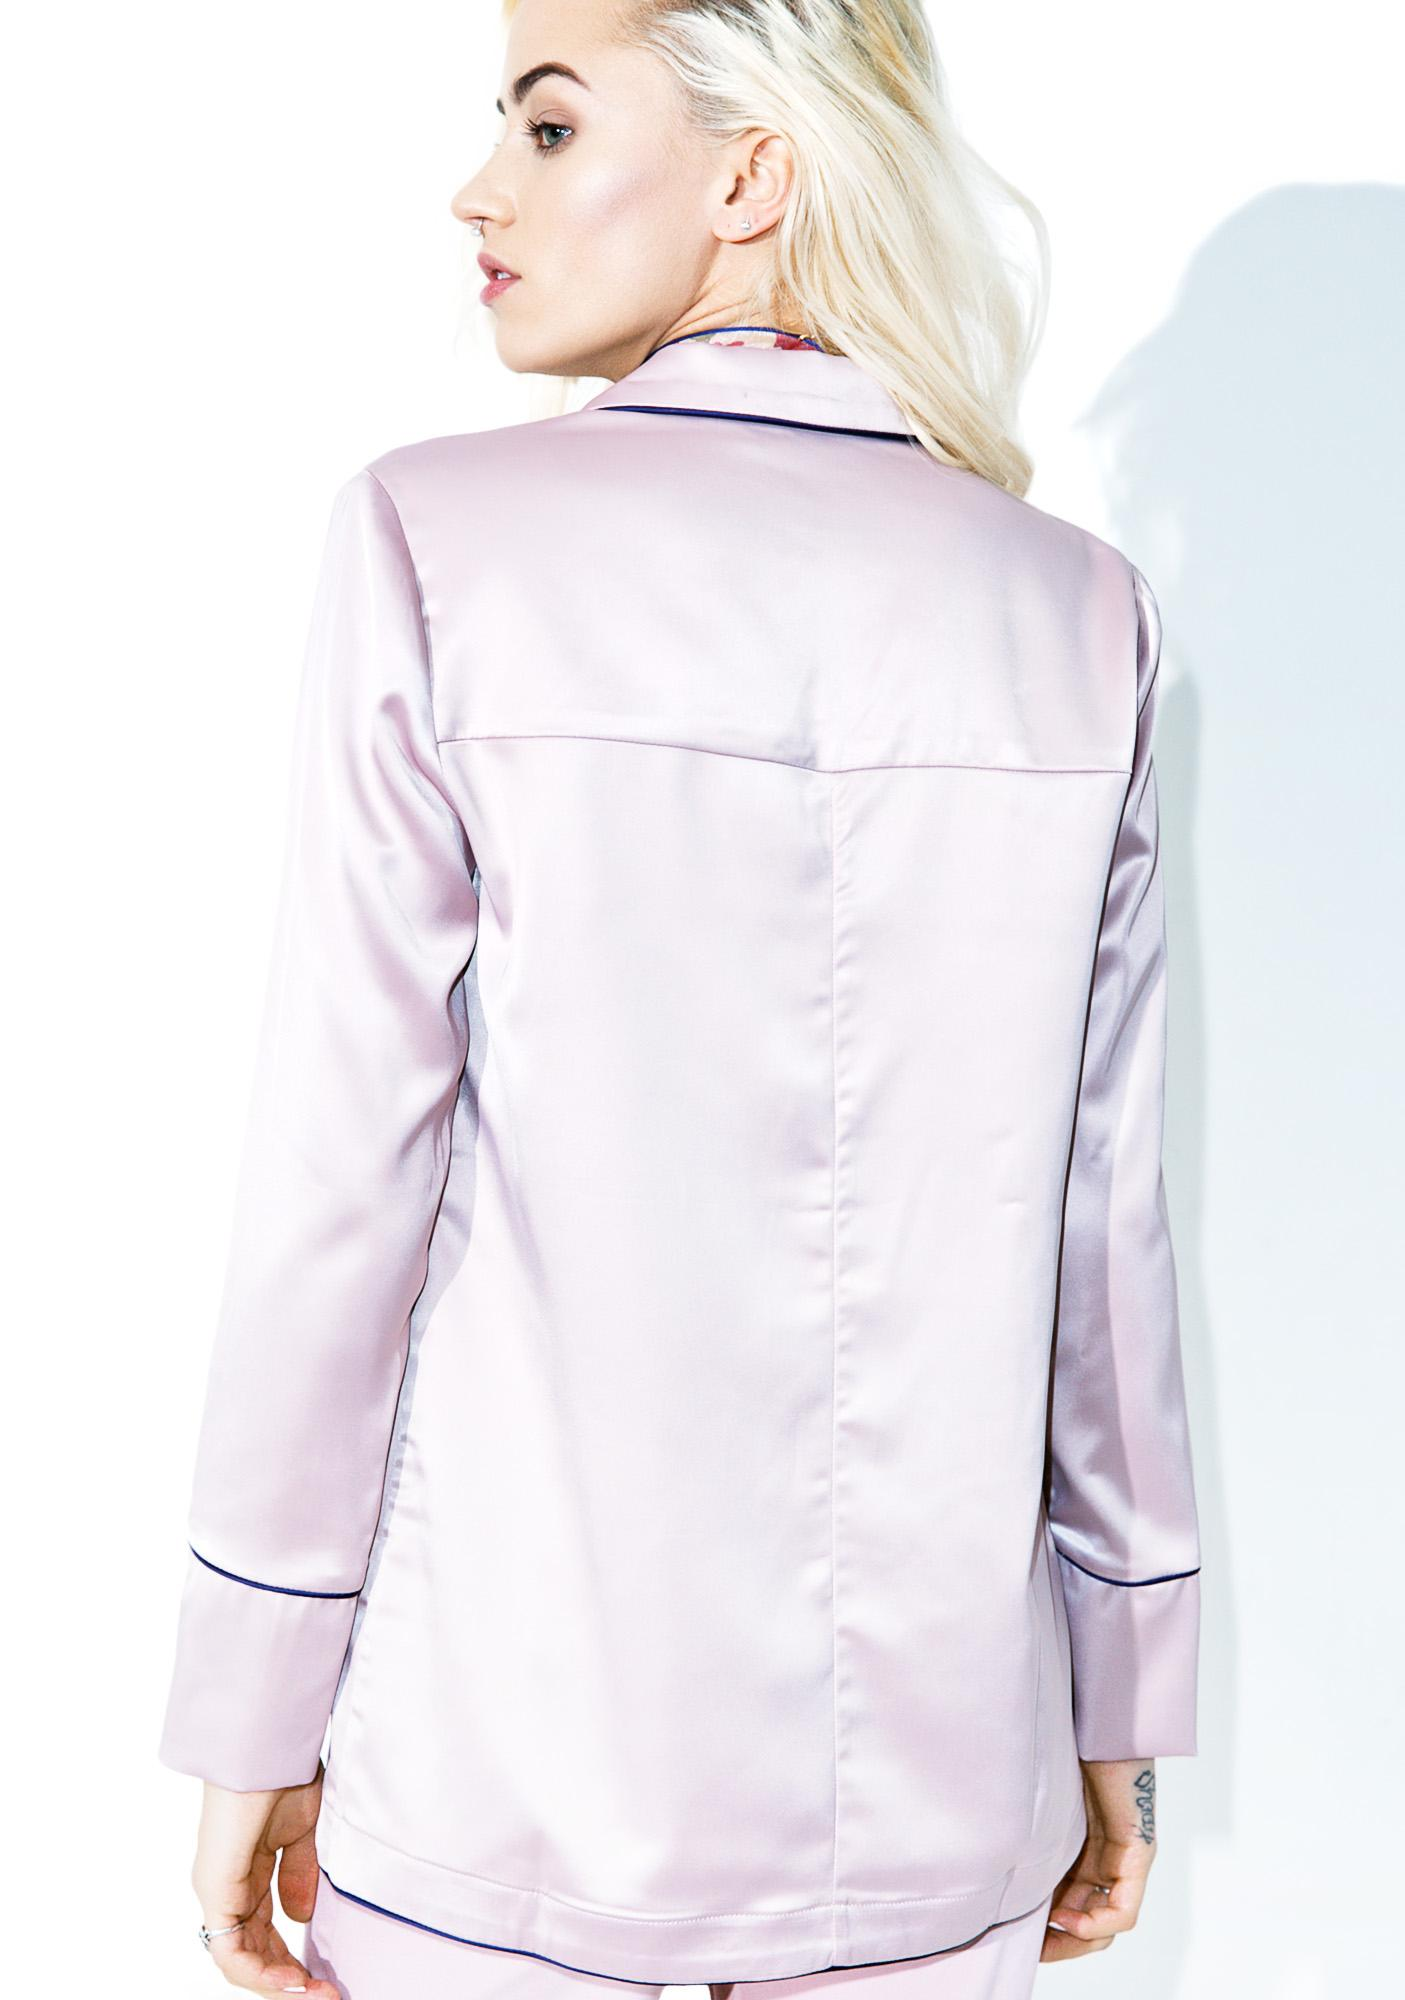 Ami Tailored Blouse